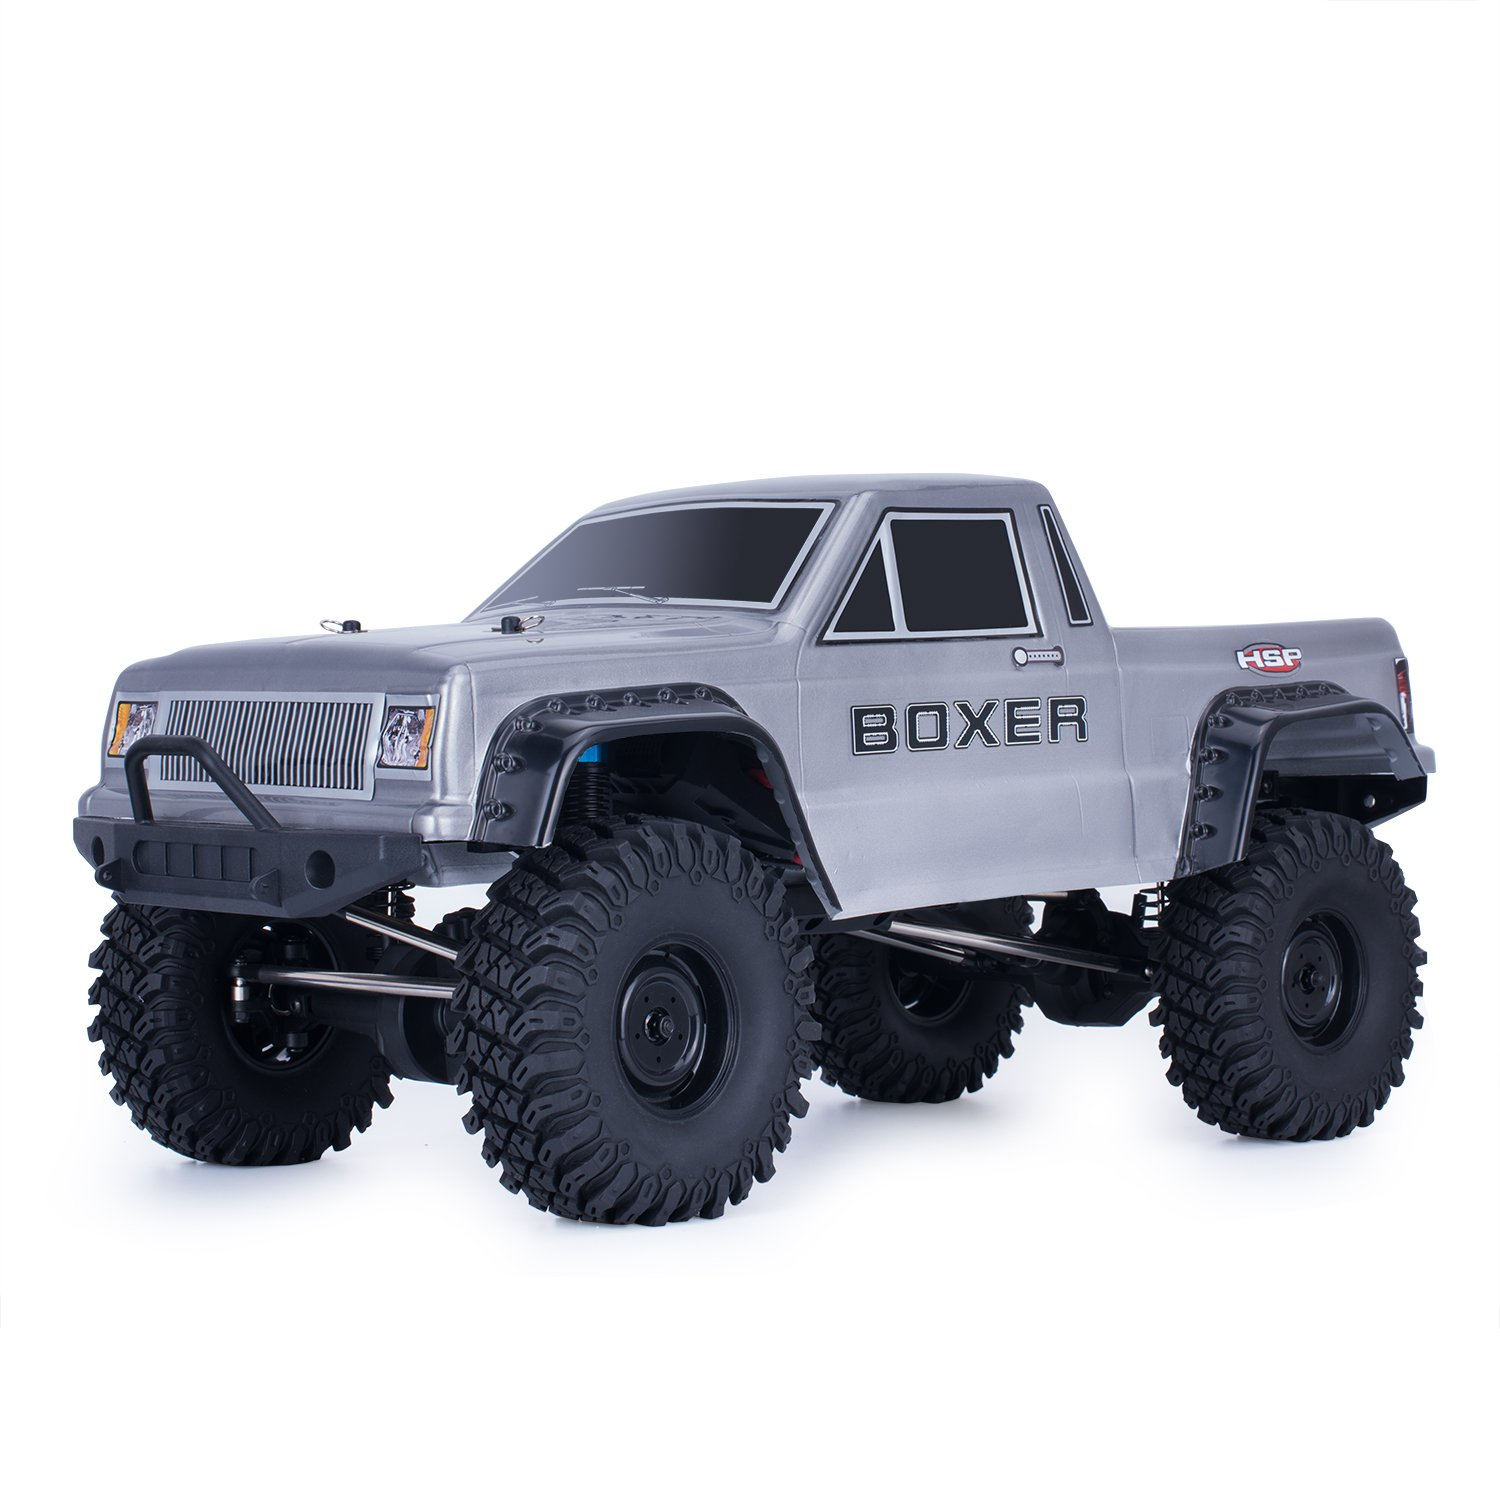 HSP RC Crawlers RTR 1/10 Scale 4wd Off Road Monster Truck Rock Crawler 4x4 High Speed Waterproof rc Truck (Silver)